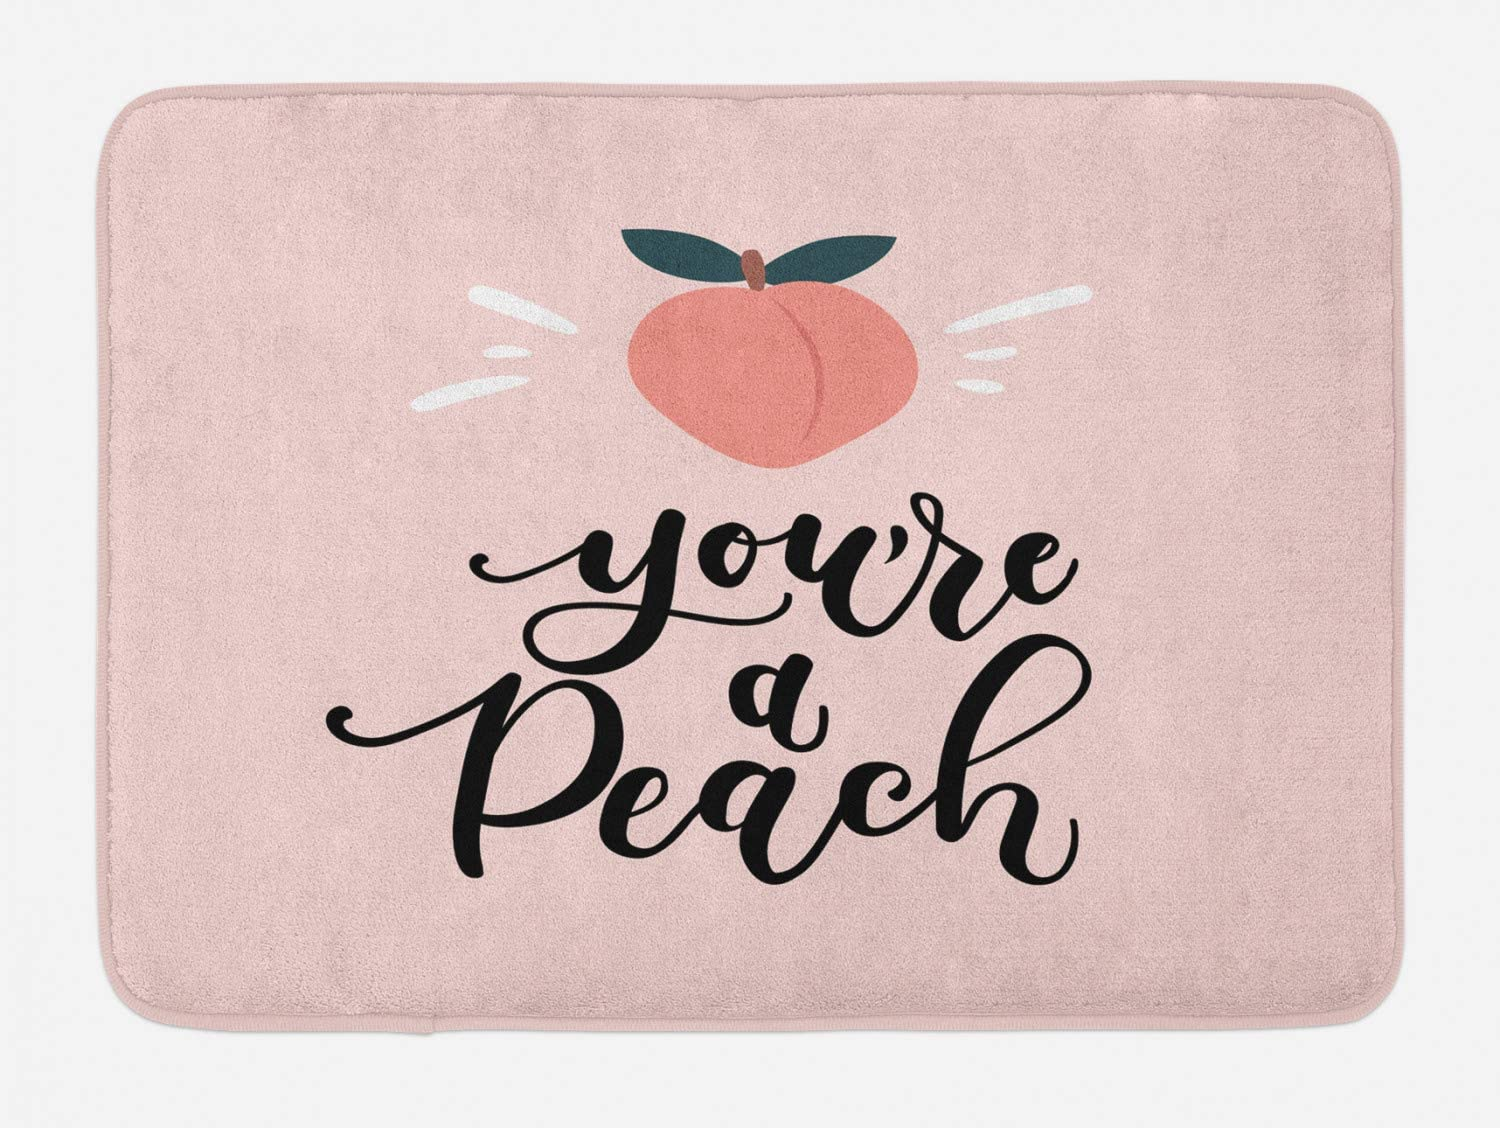 "Ambesonne Fruit Bath Mat, You're a Peach Typography and Leaves Healthy Food in Pastel Tones, Plush Bathroom Decor Mat with Non Slip Backing, 29.5"" X 17.5"", Coral Eggshell"